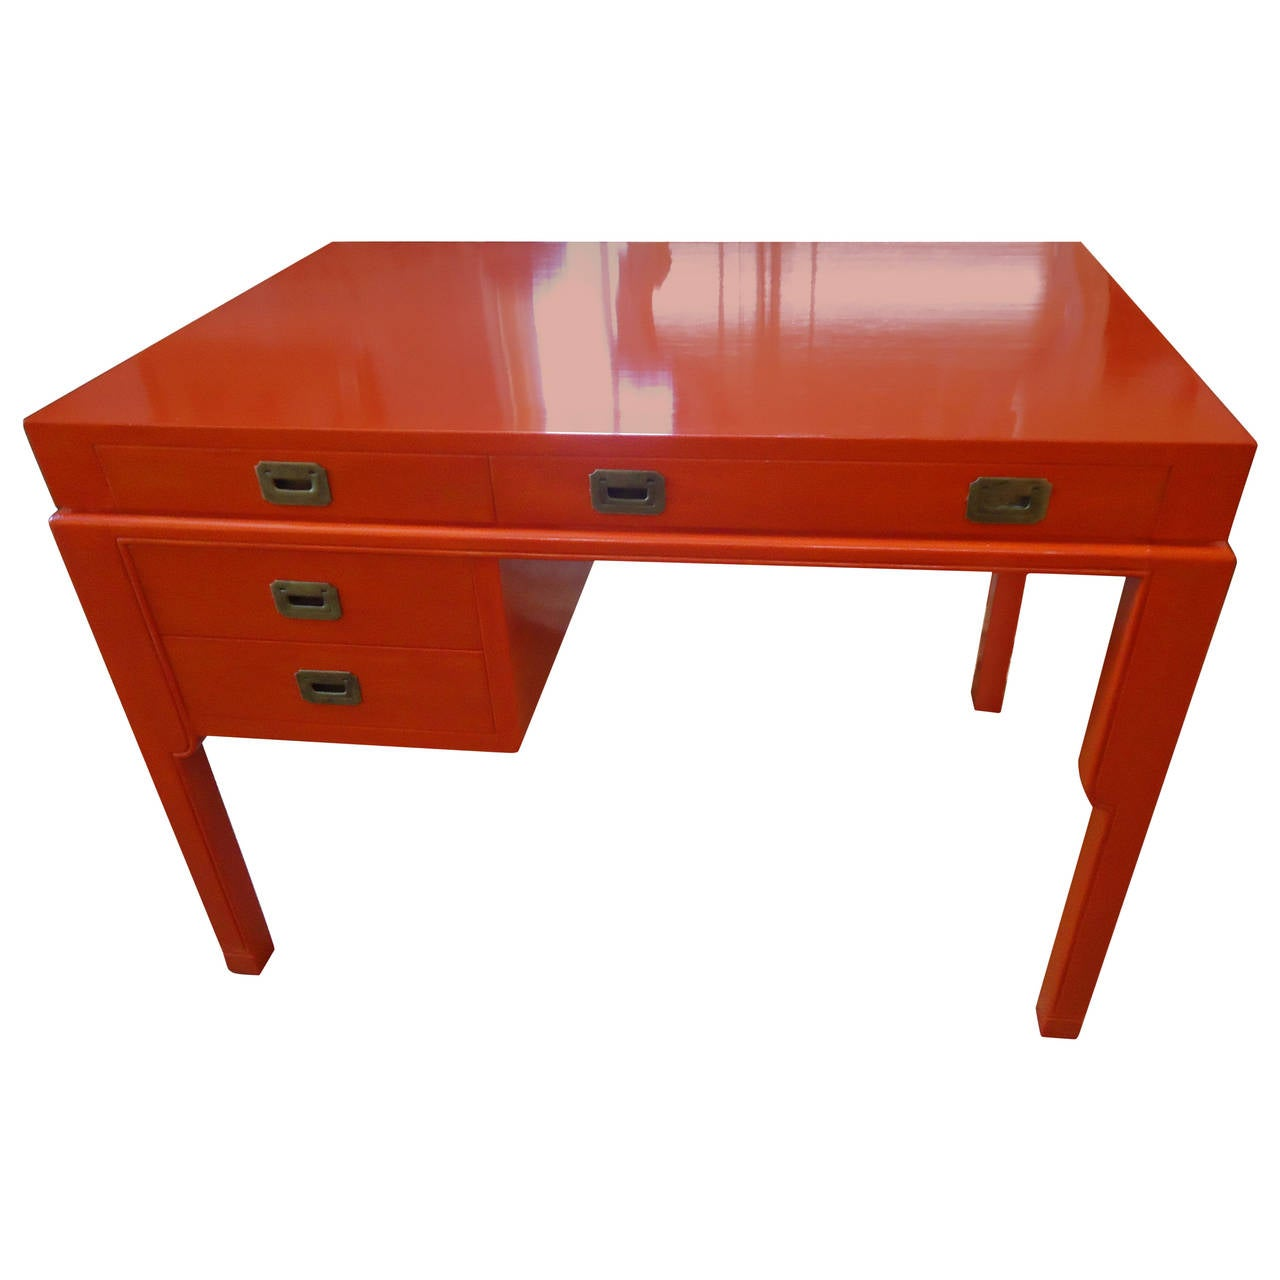 Knotty Pine Coffee Table Images Sensational Folding Lawn